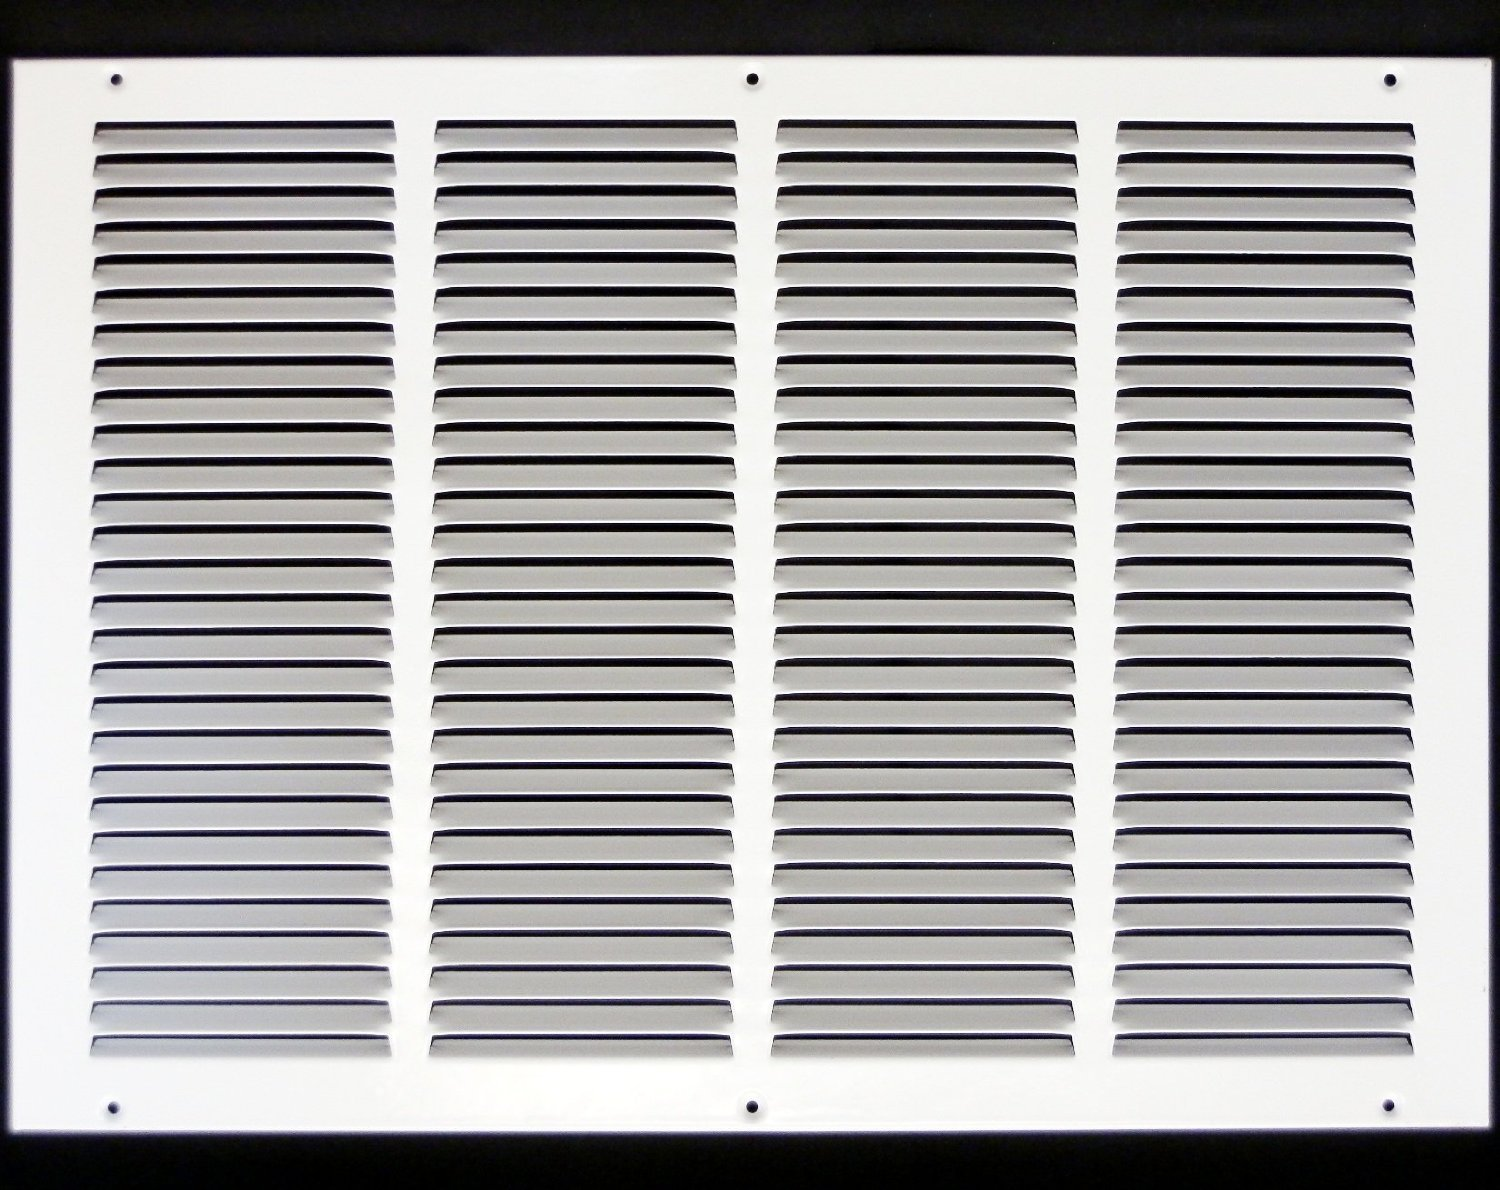 20''w X 14''h Steel Return Air Grilles - Sidewall and Cieling - HVAC DUCT COVER - White [Outer Dimensions: 21.75''w X 15.75''h]